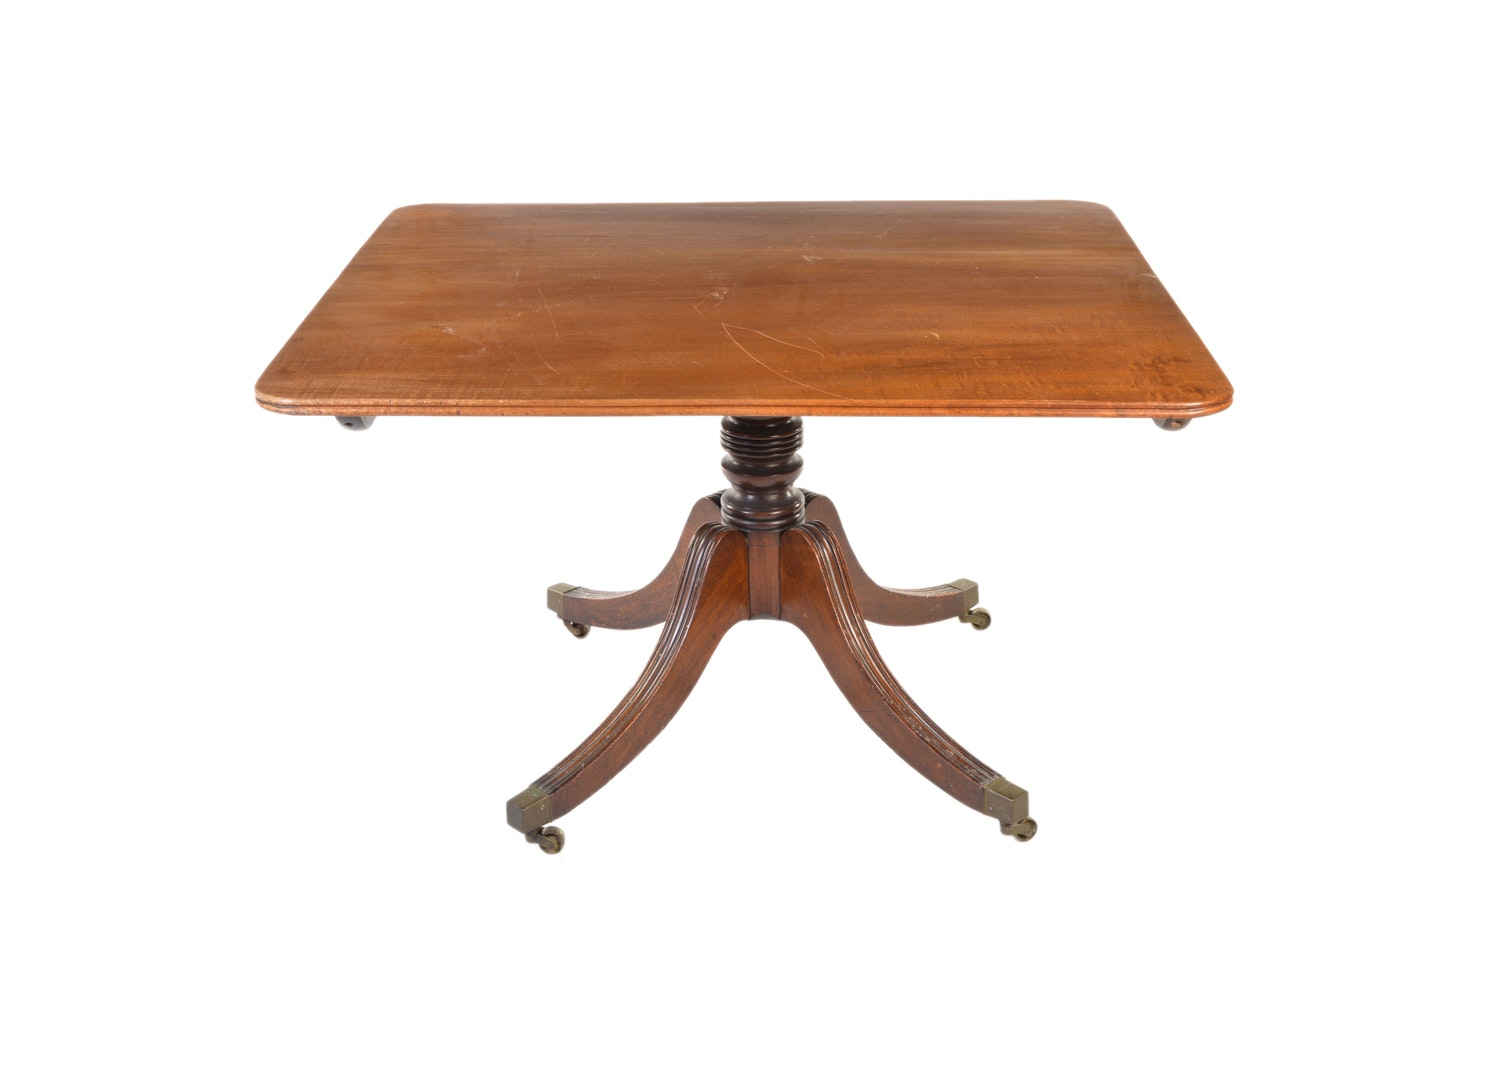 Vintage Square Table on Wheels